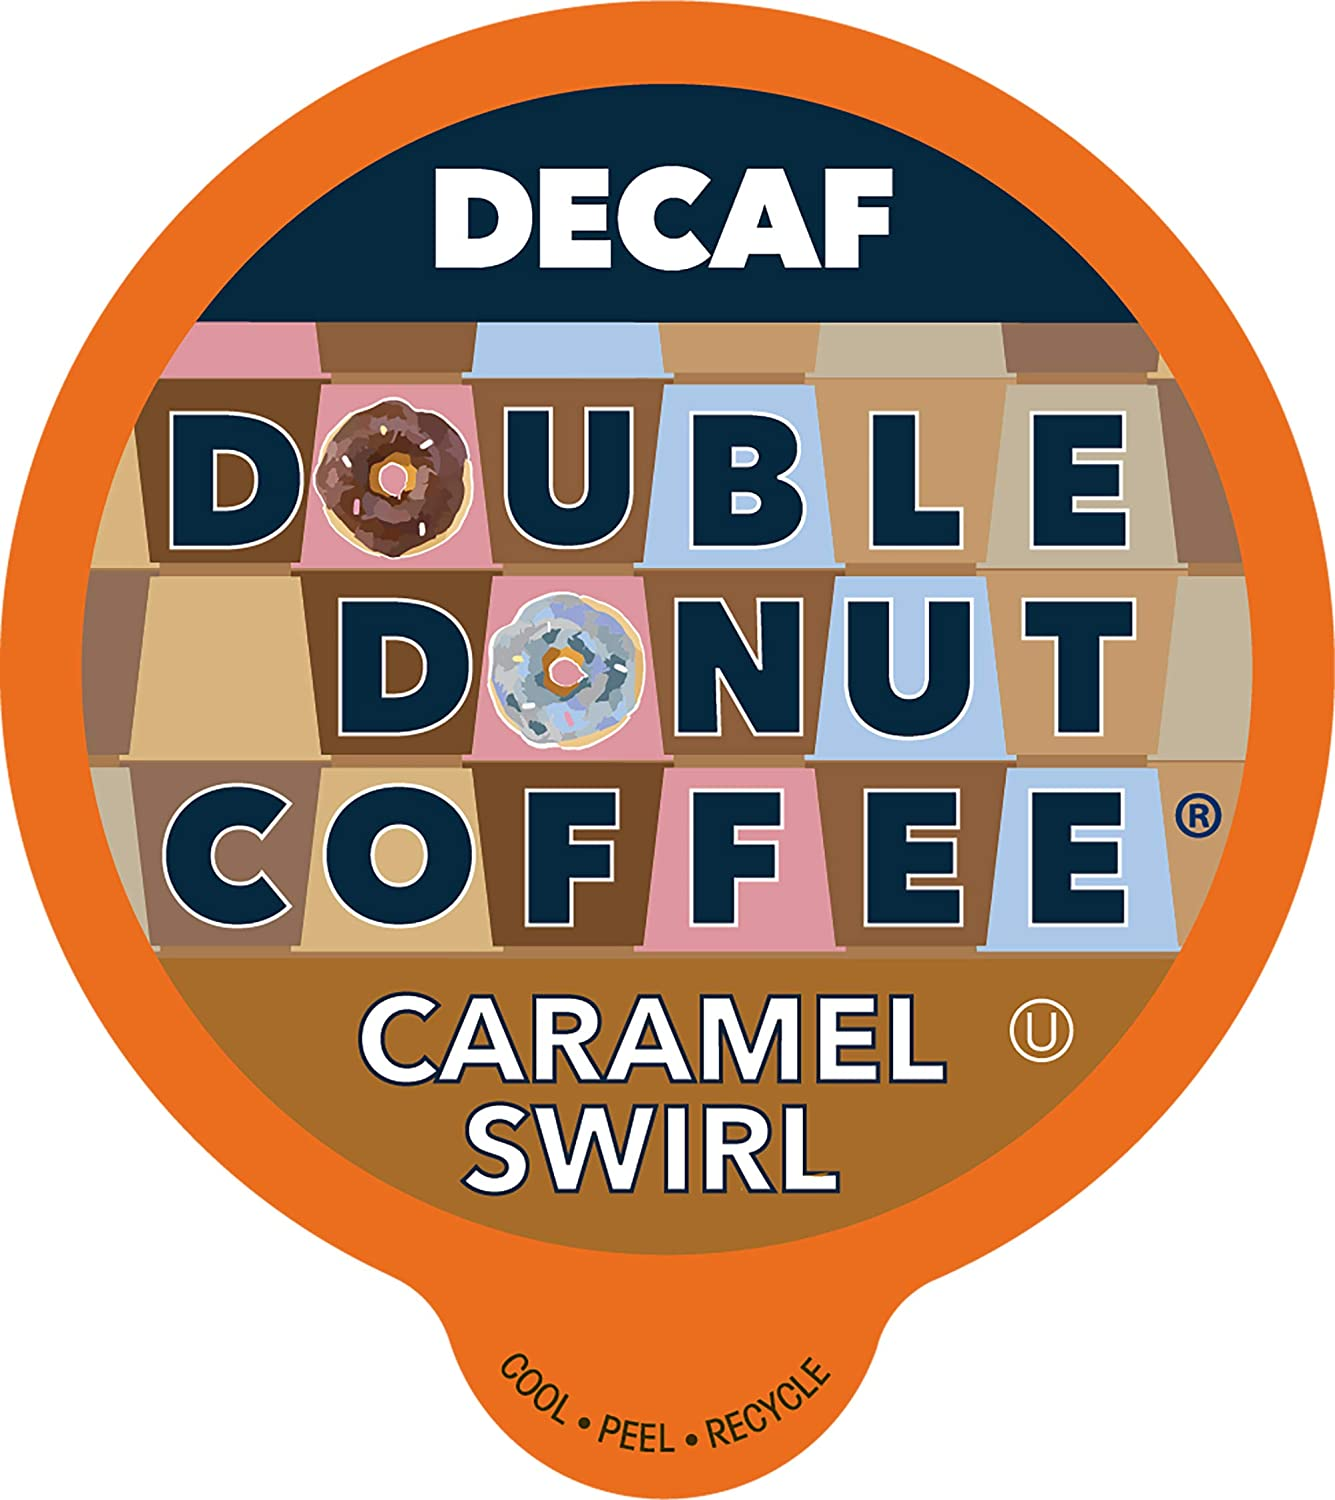 Double Donut Flavored Decaf Caramel Decaffeinated Limited time trial price Fashionable Coffee